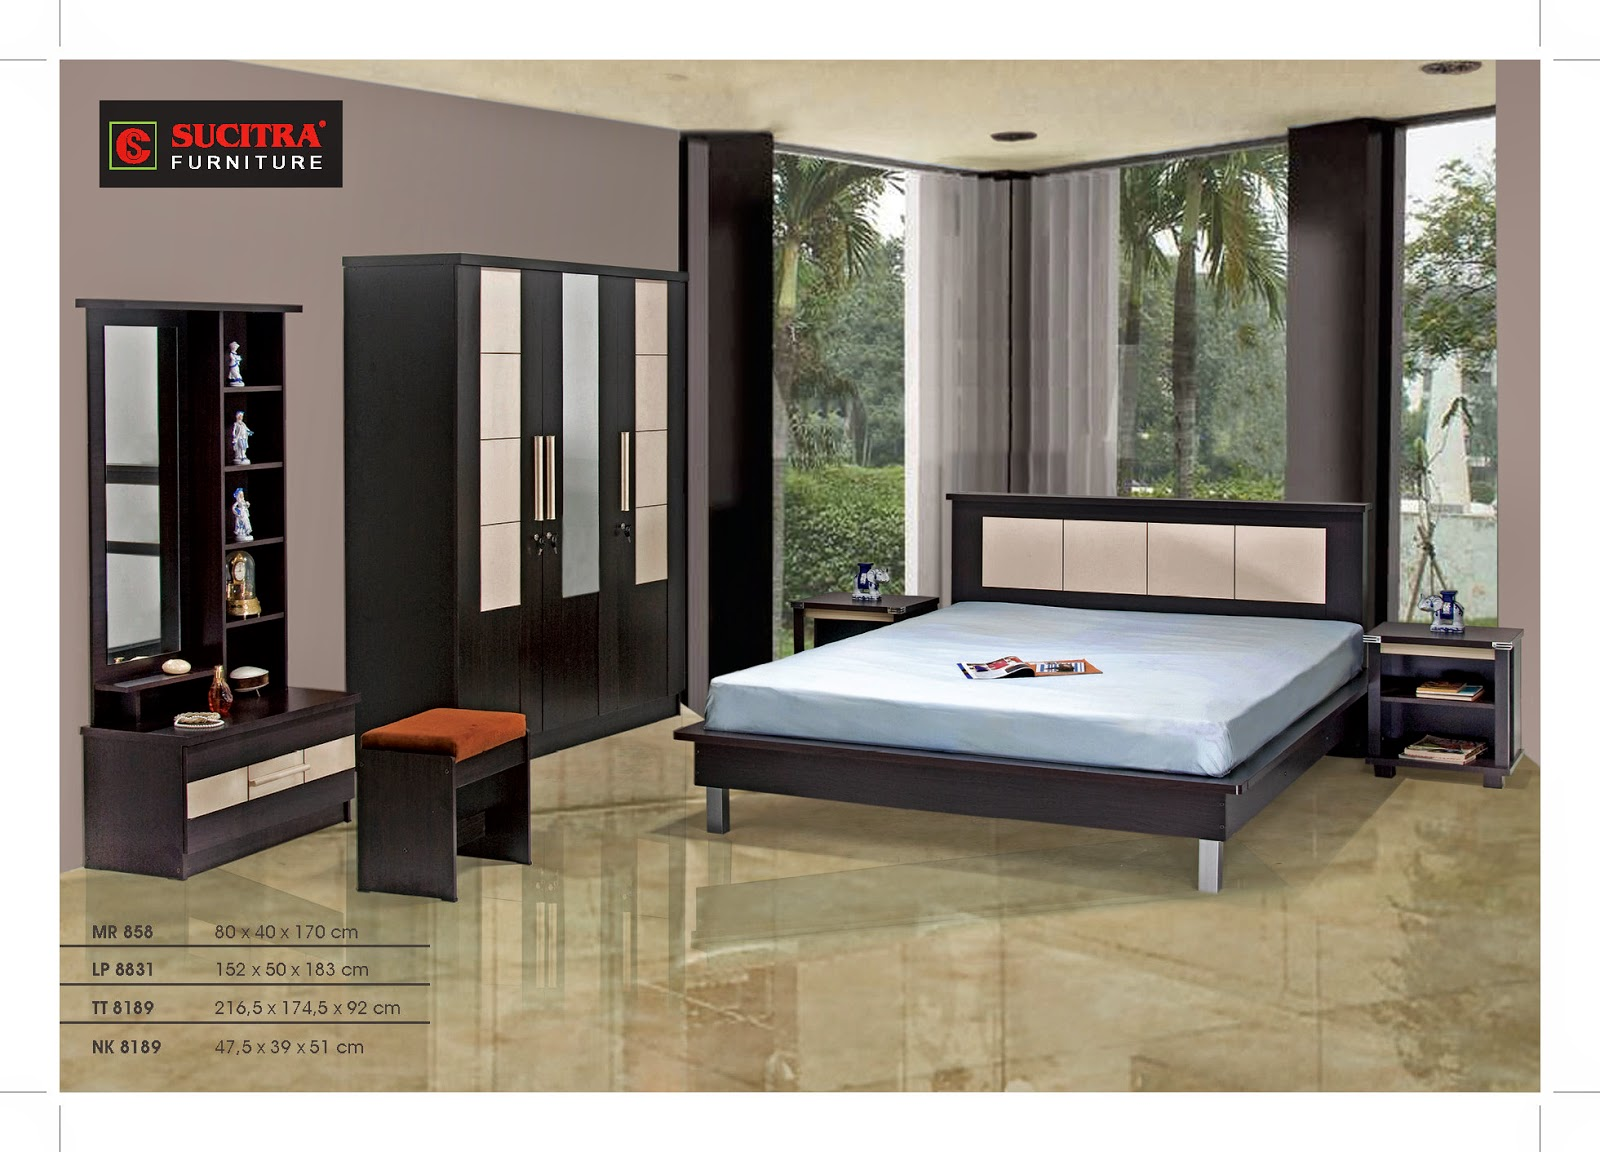 Bedroom Set Sucitra Furniture